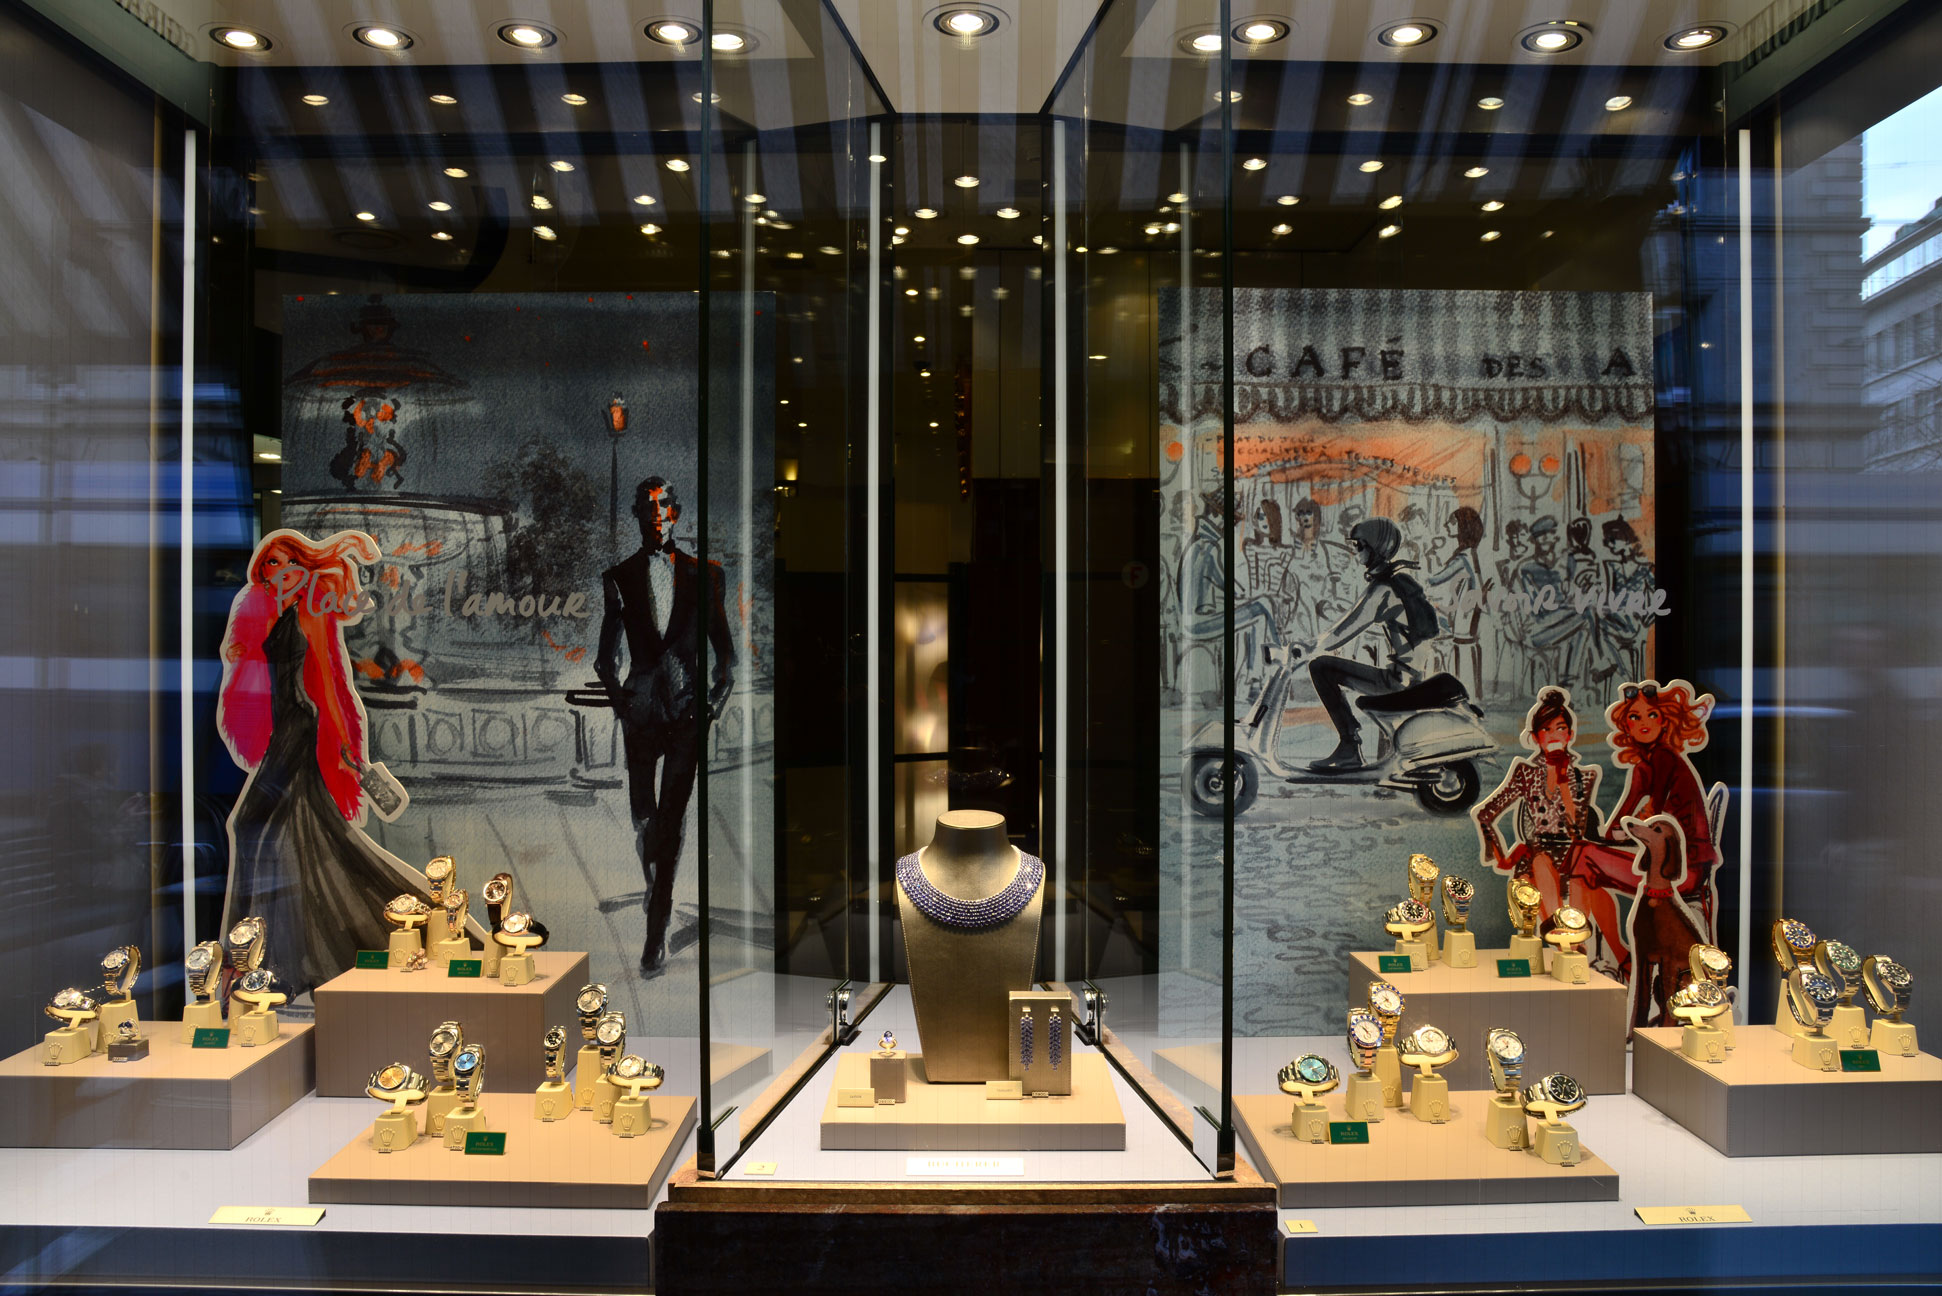 Window display with an elegant theme for Bucherer Jewelry in Zurich, jewelry display setting created by Studio Achermann, Graphic Design.